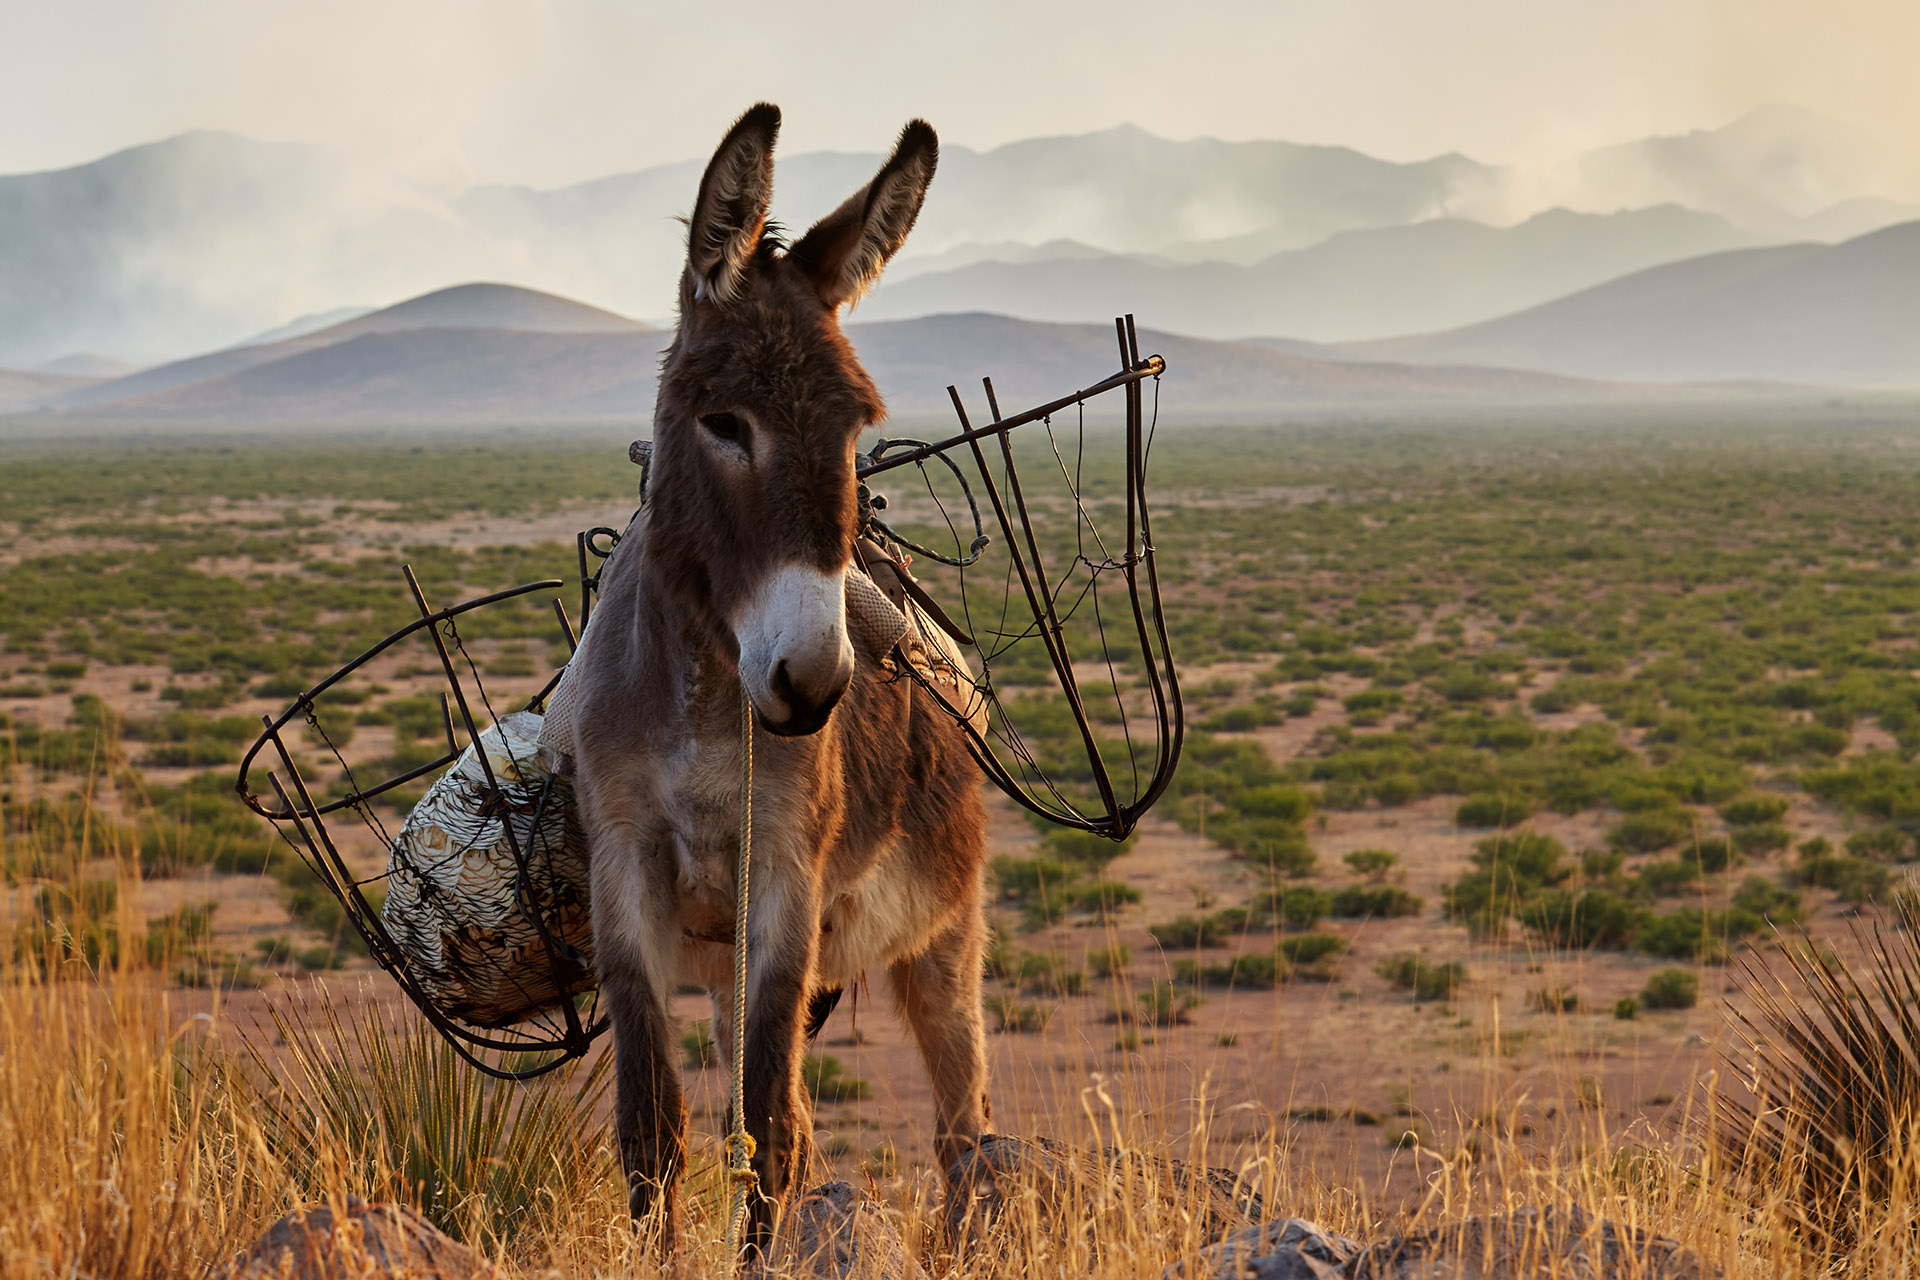 Donkey carrying desert spoon plant